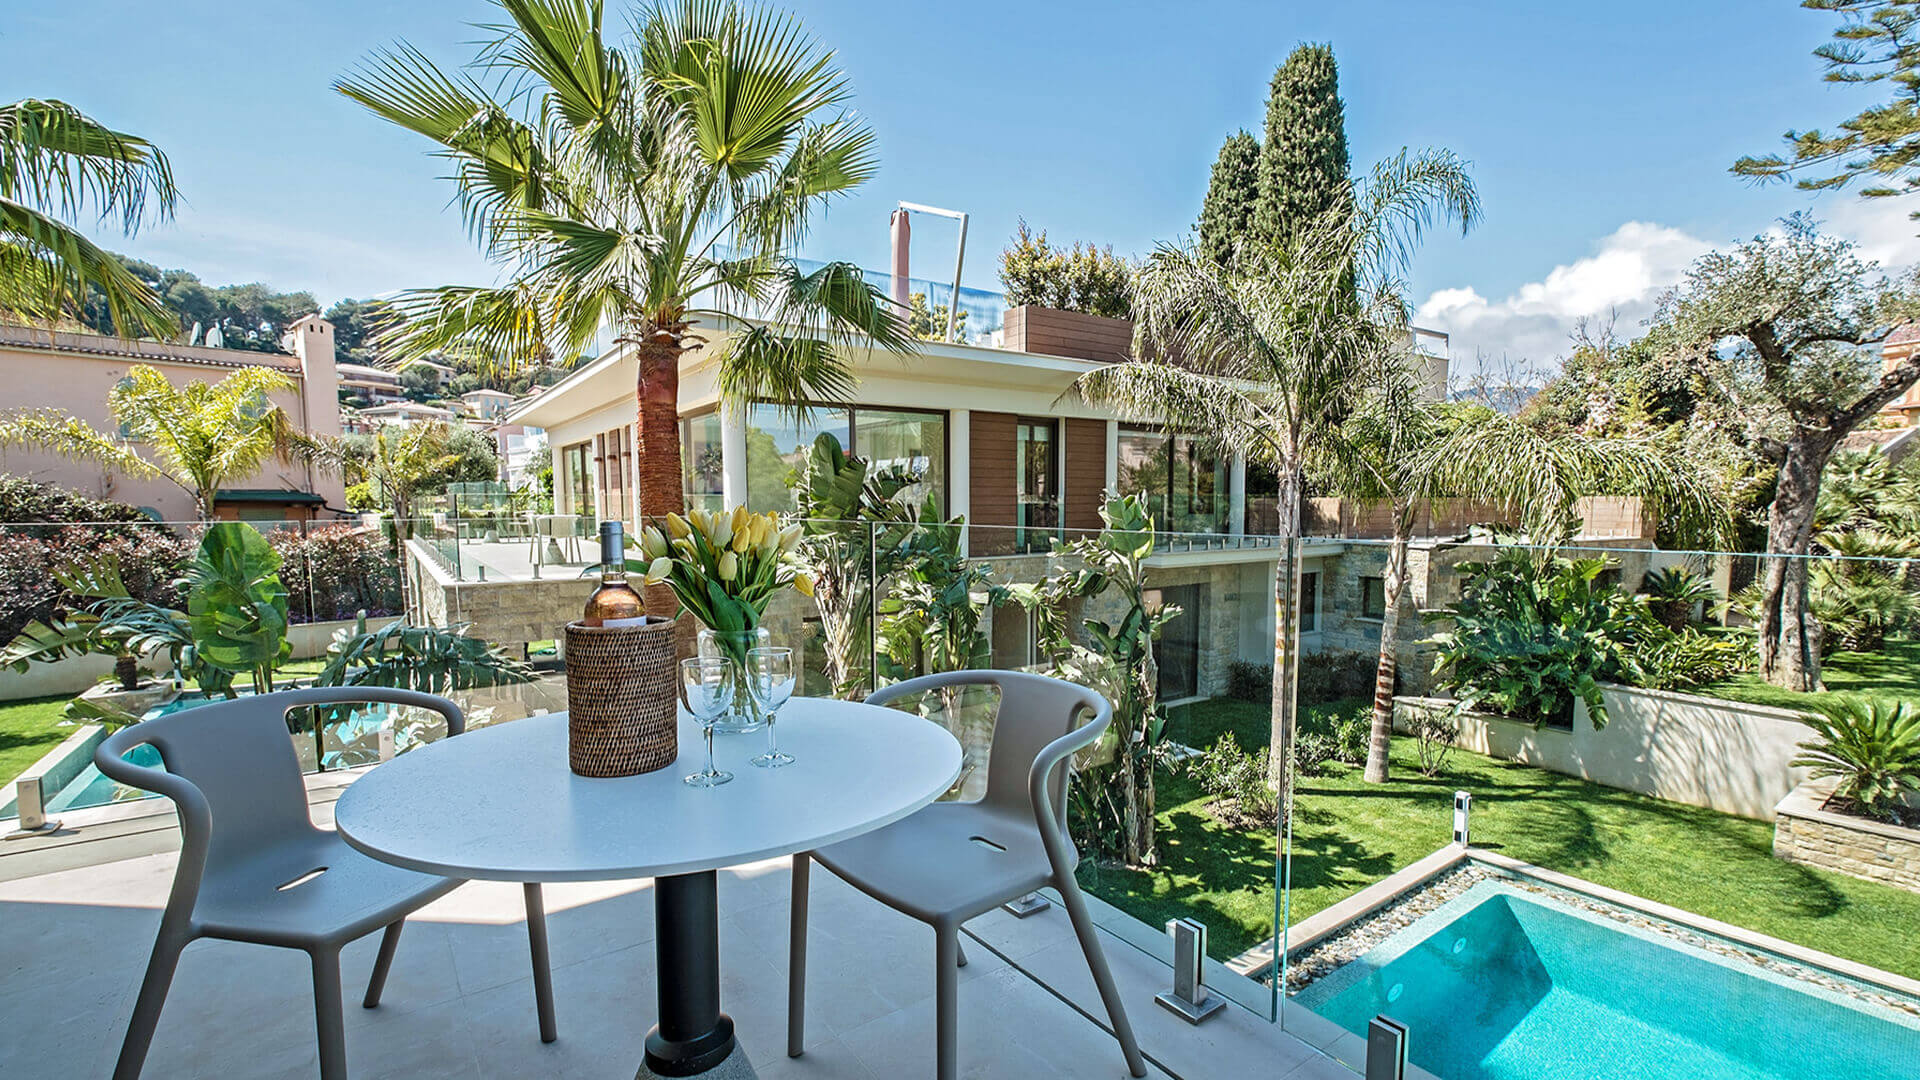 Large Luxury villa balcony with view of swimming pool